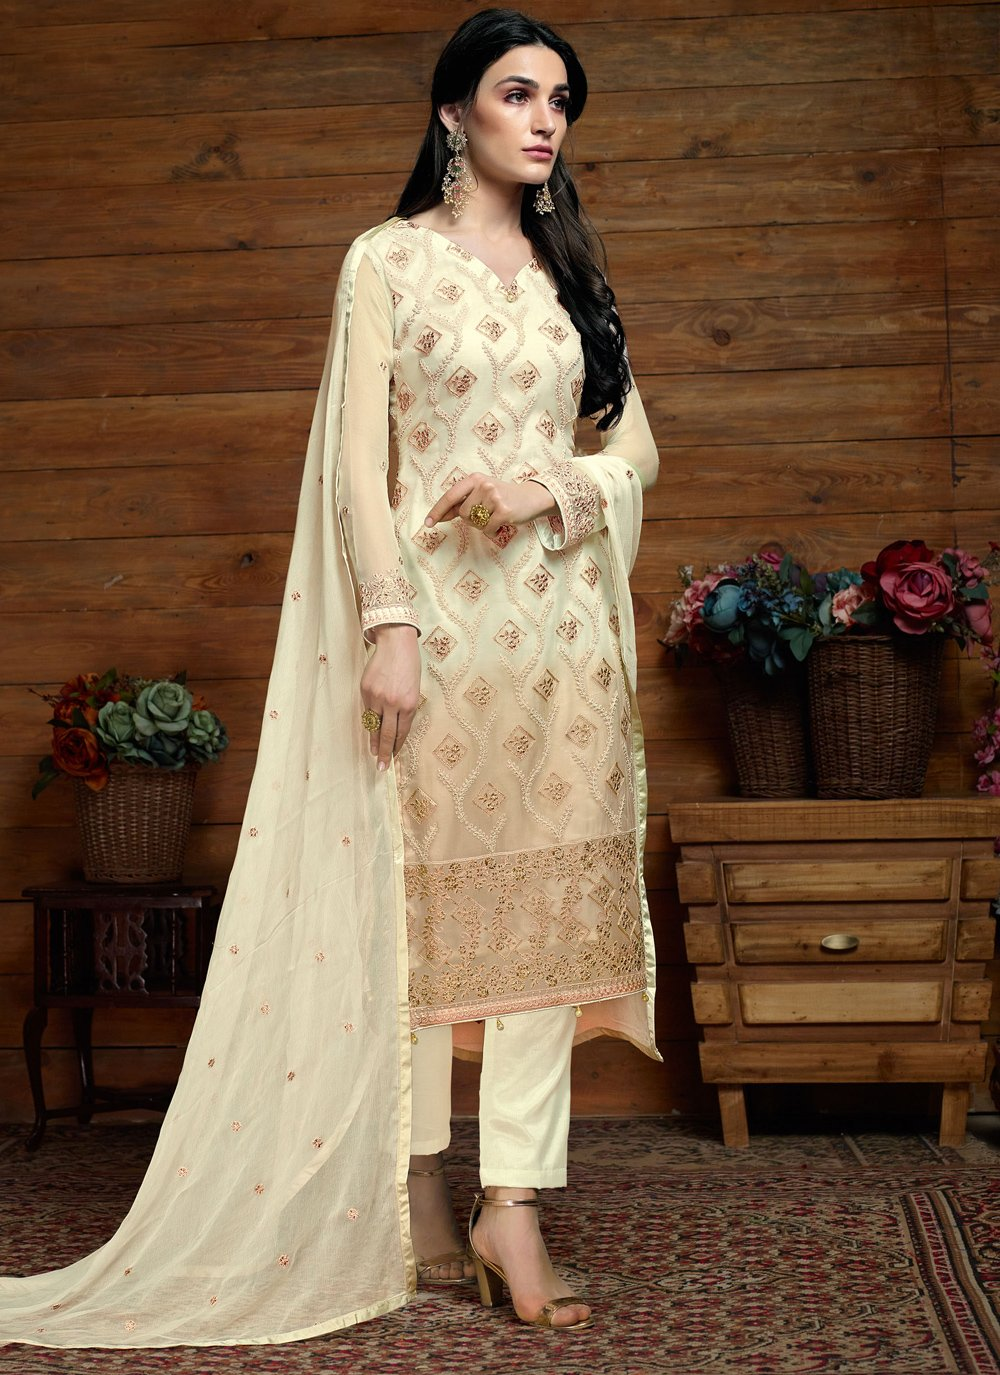 Faux Chiffon Embroidered Cream Salwar Suit